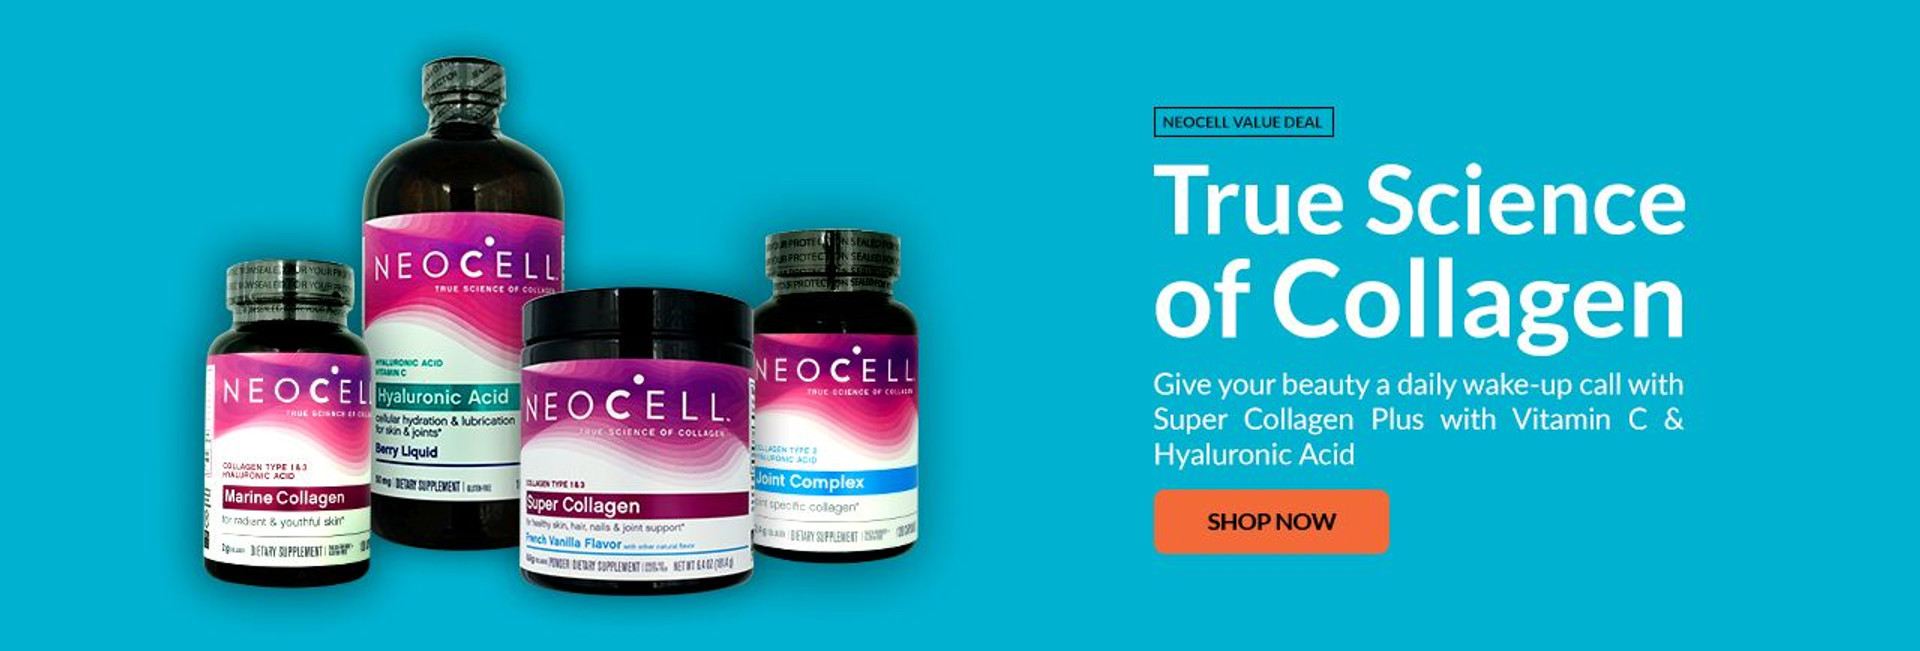 Neocell Collagen is your daily beauty wake-up call!